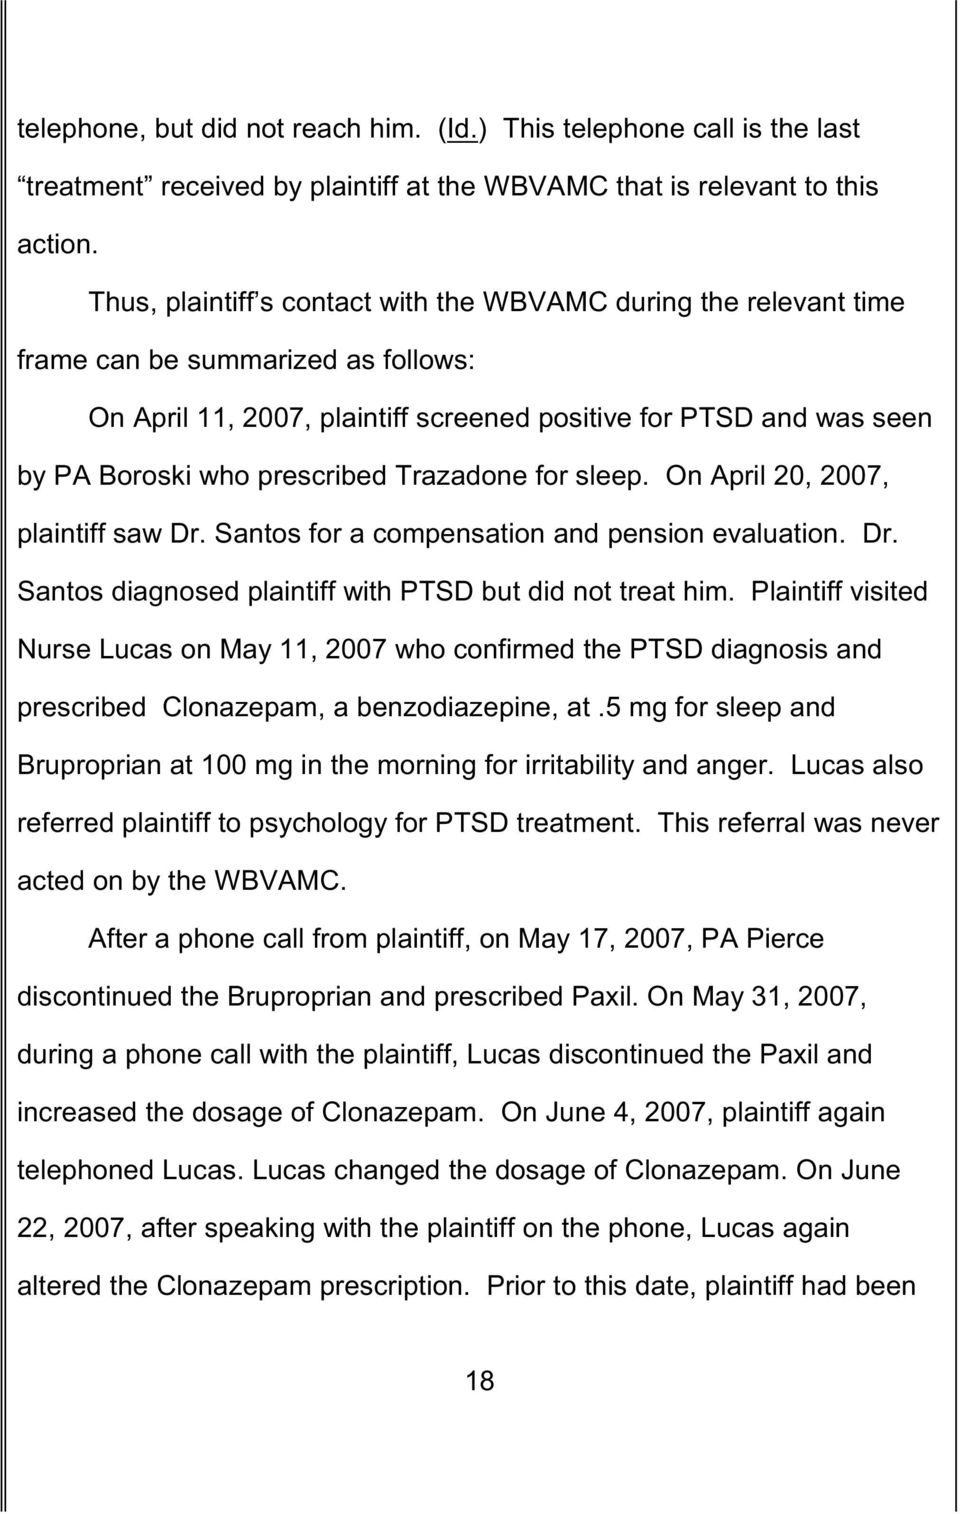 prescribed Trazadone for sleep. On April 20, 2007, plaintiff saw Dr. Santos for a compensation and pension evaluation. Dr. Santos diagnosed plaintiff with PTSD but did not treat him.